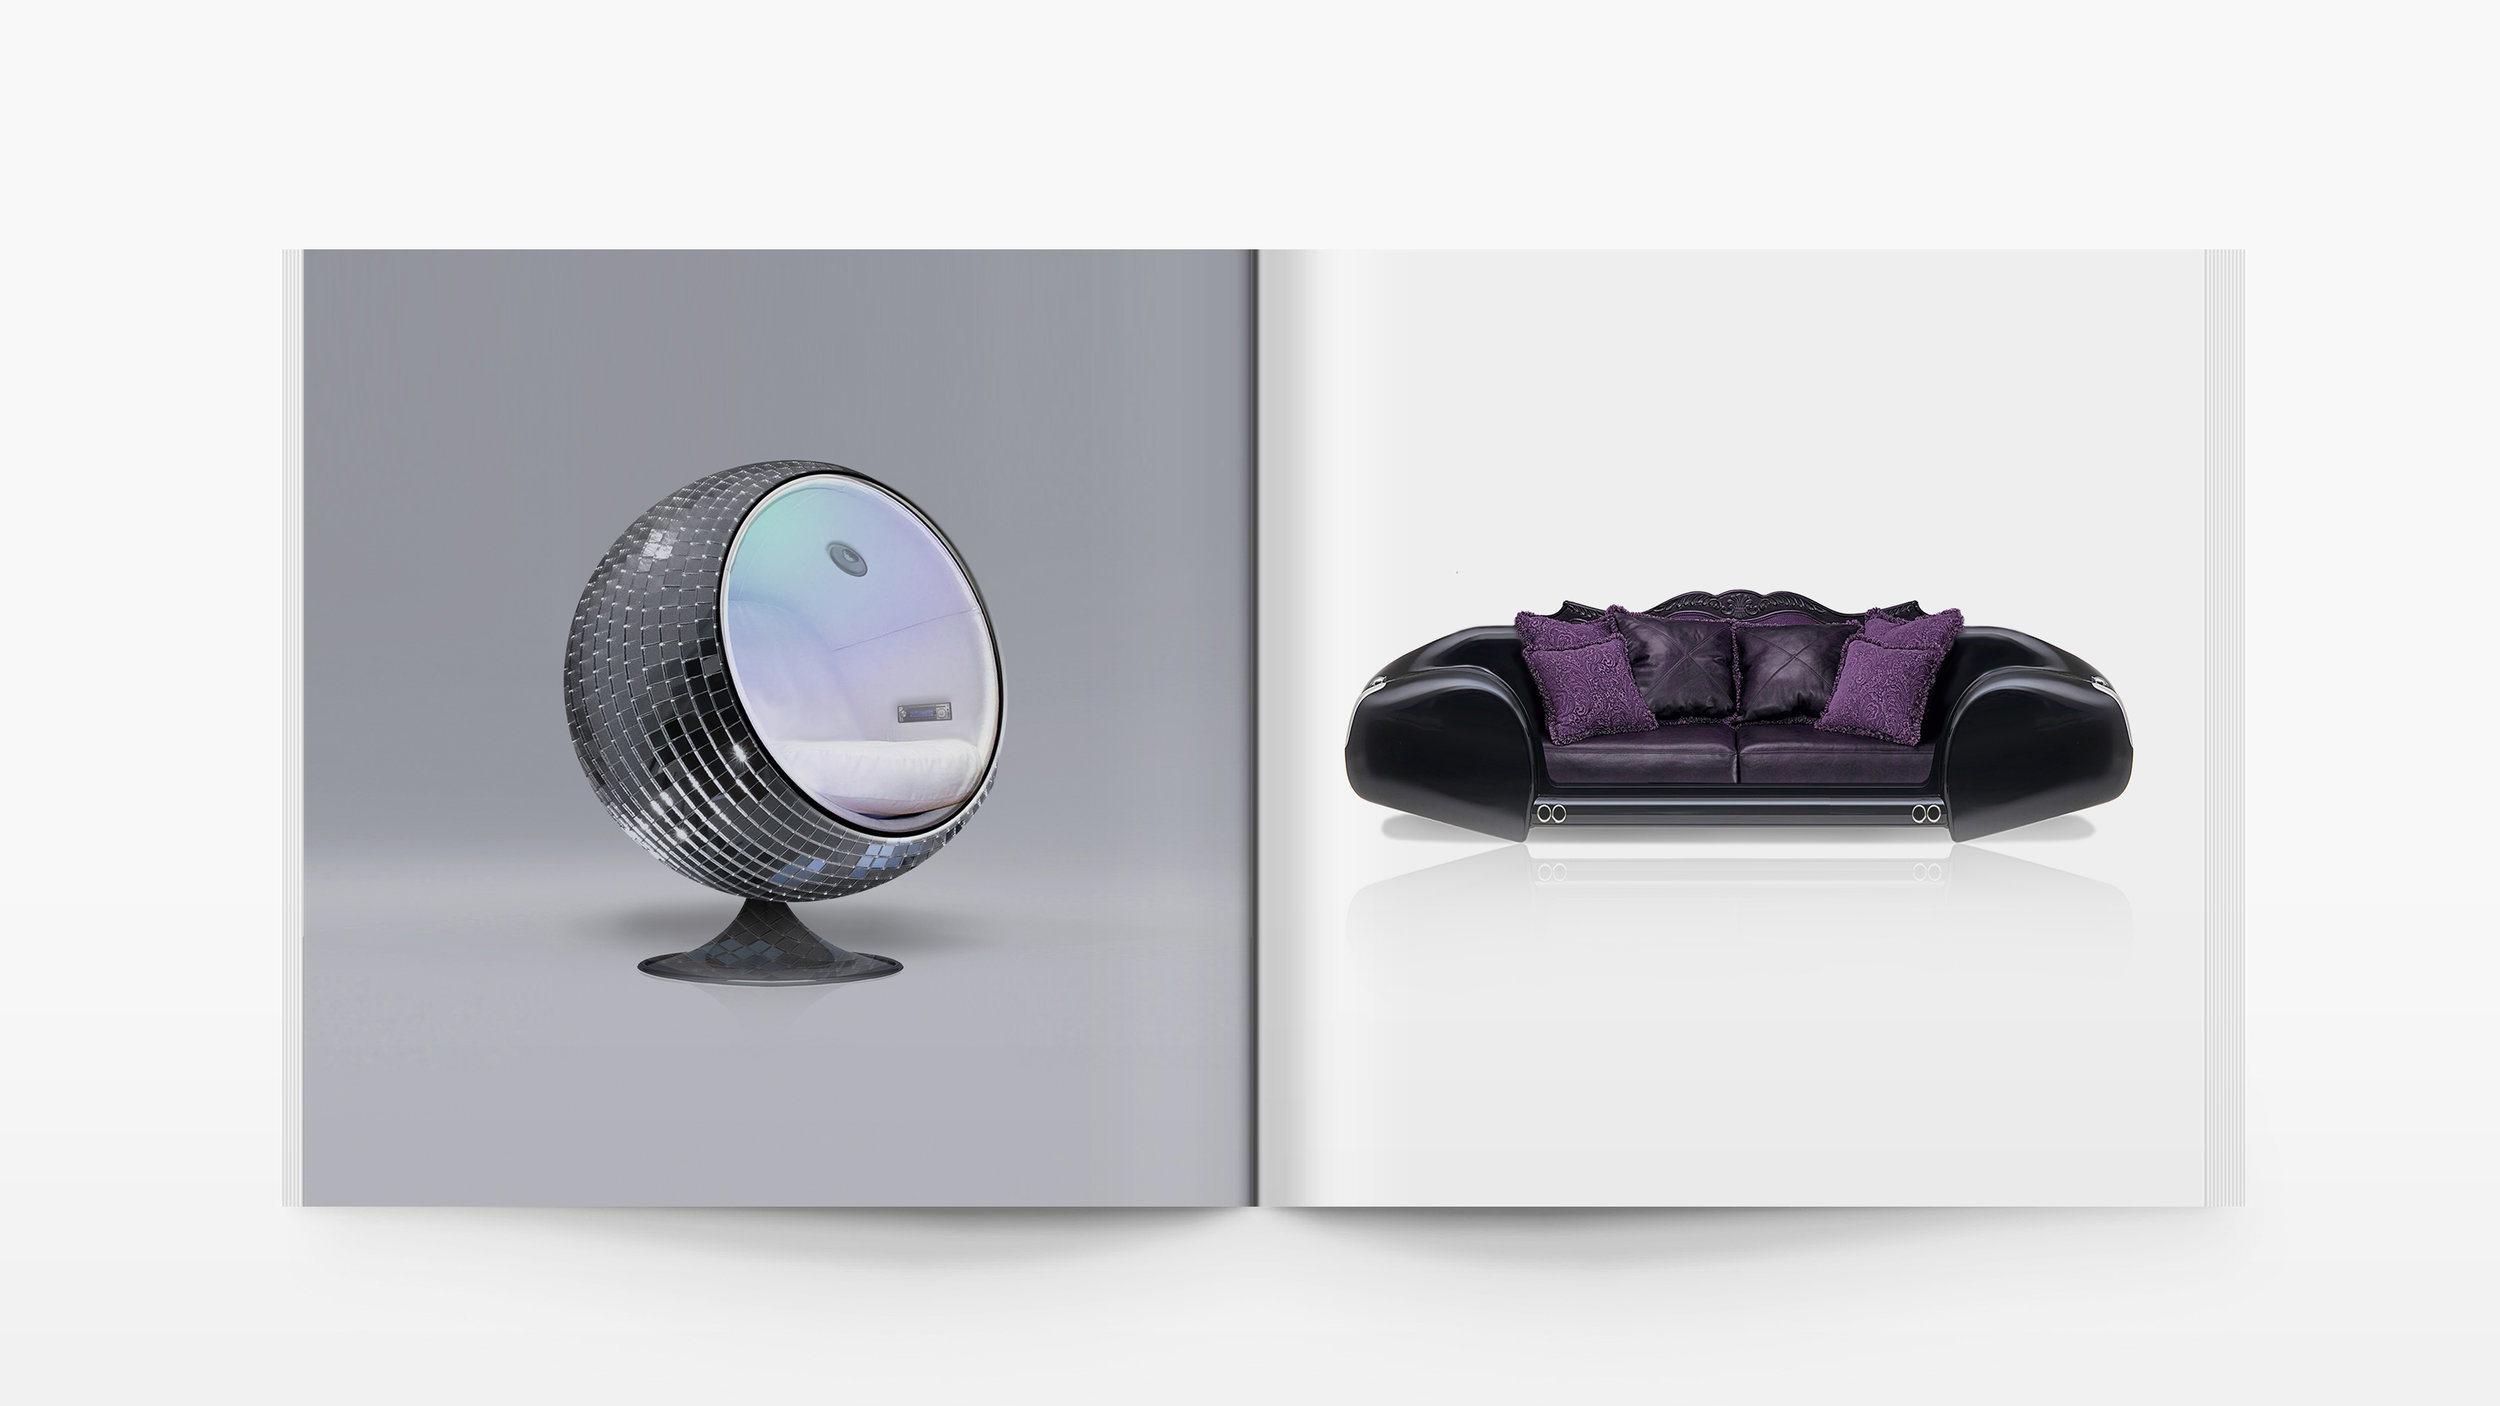 Brand_republica_branding_and_interior_design_couch_02.jpg